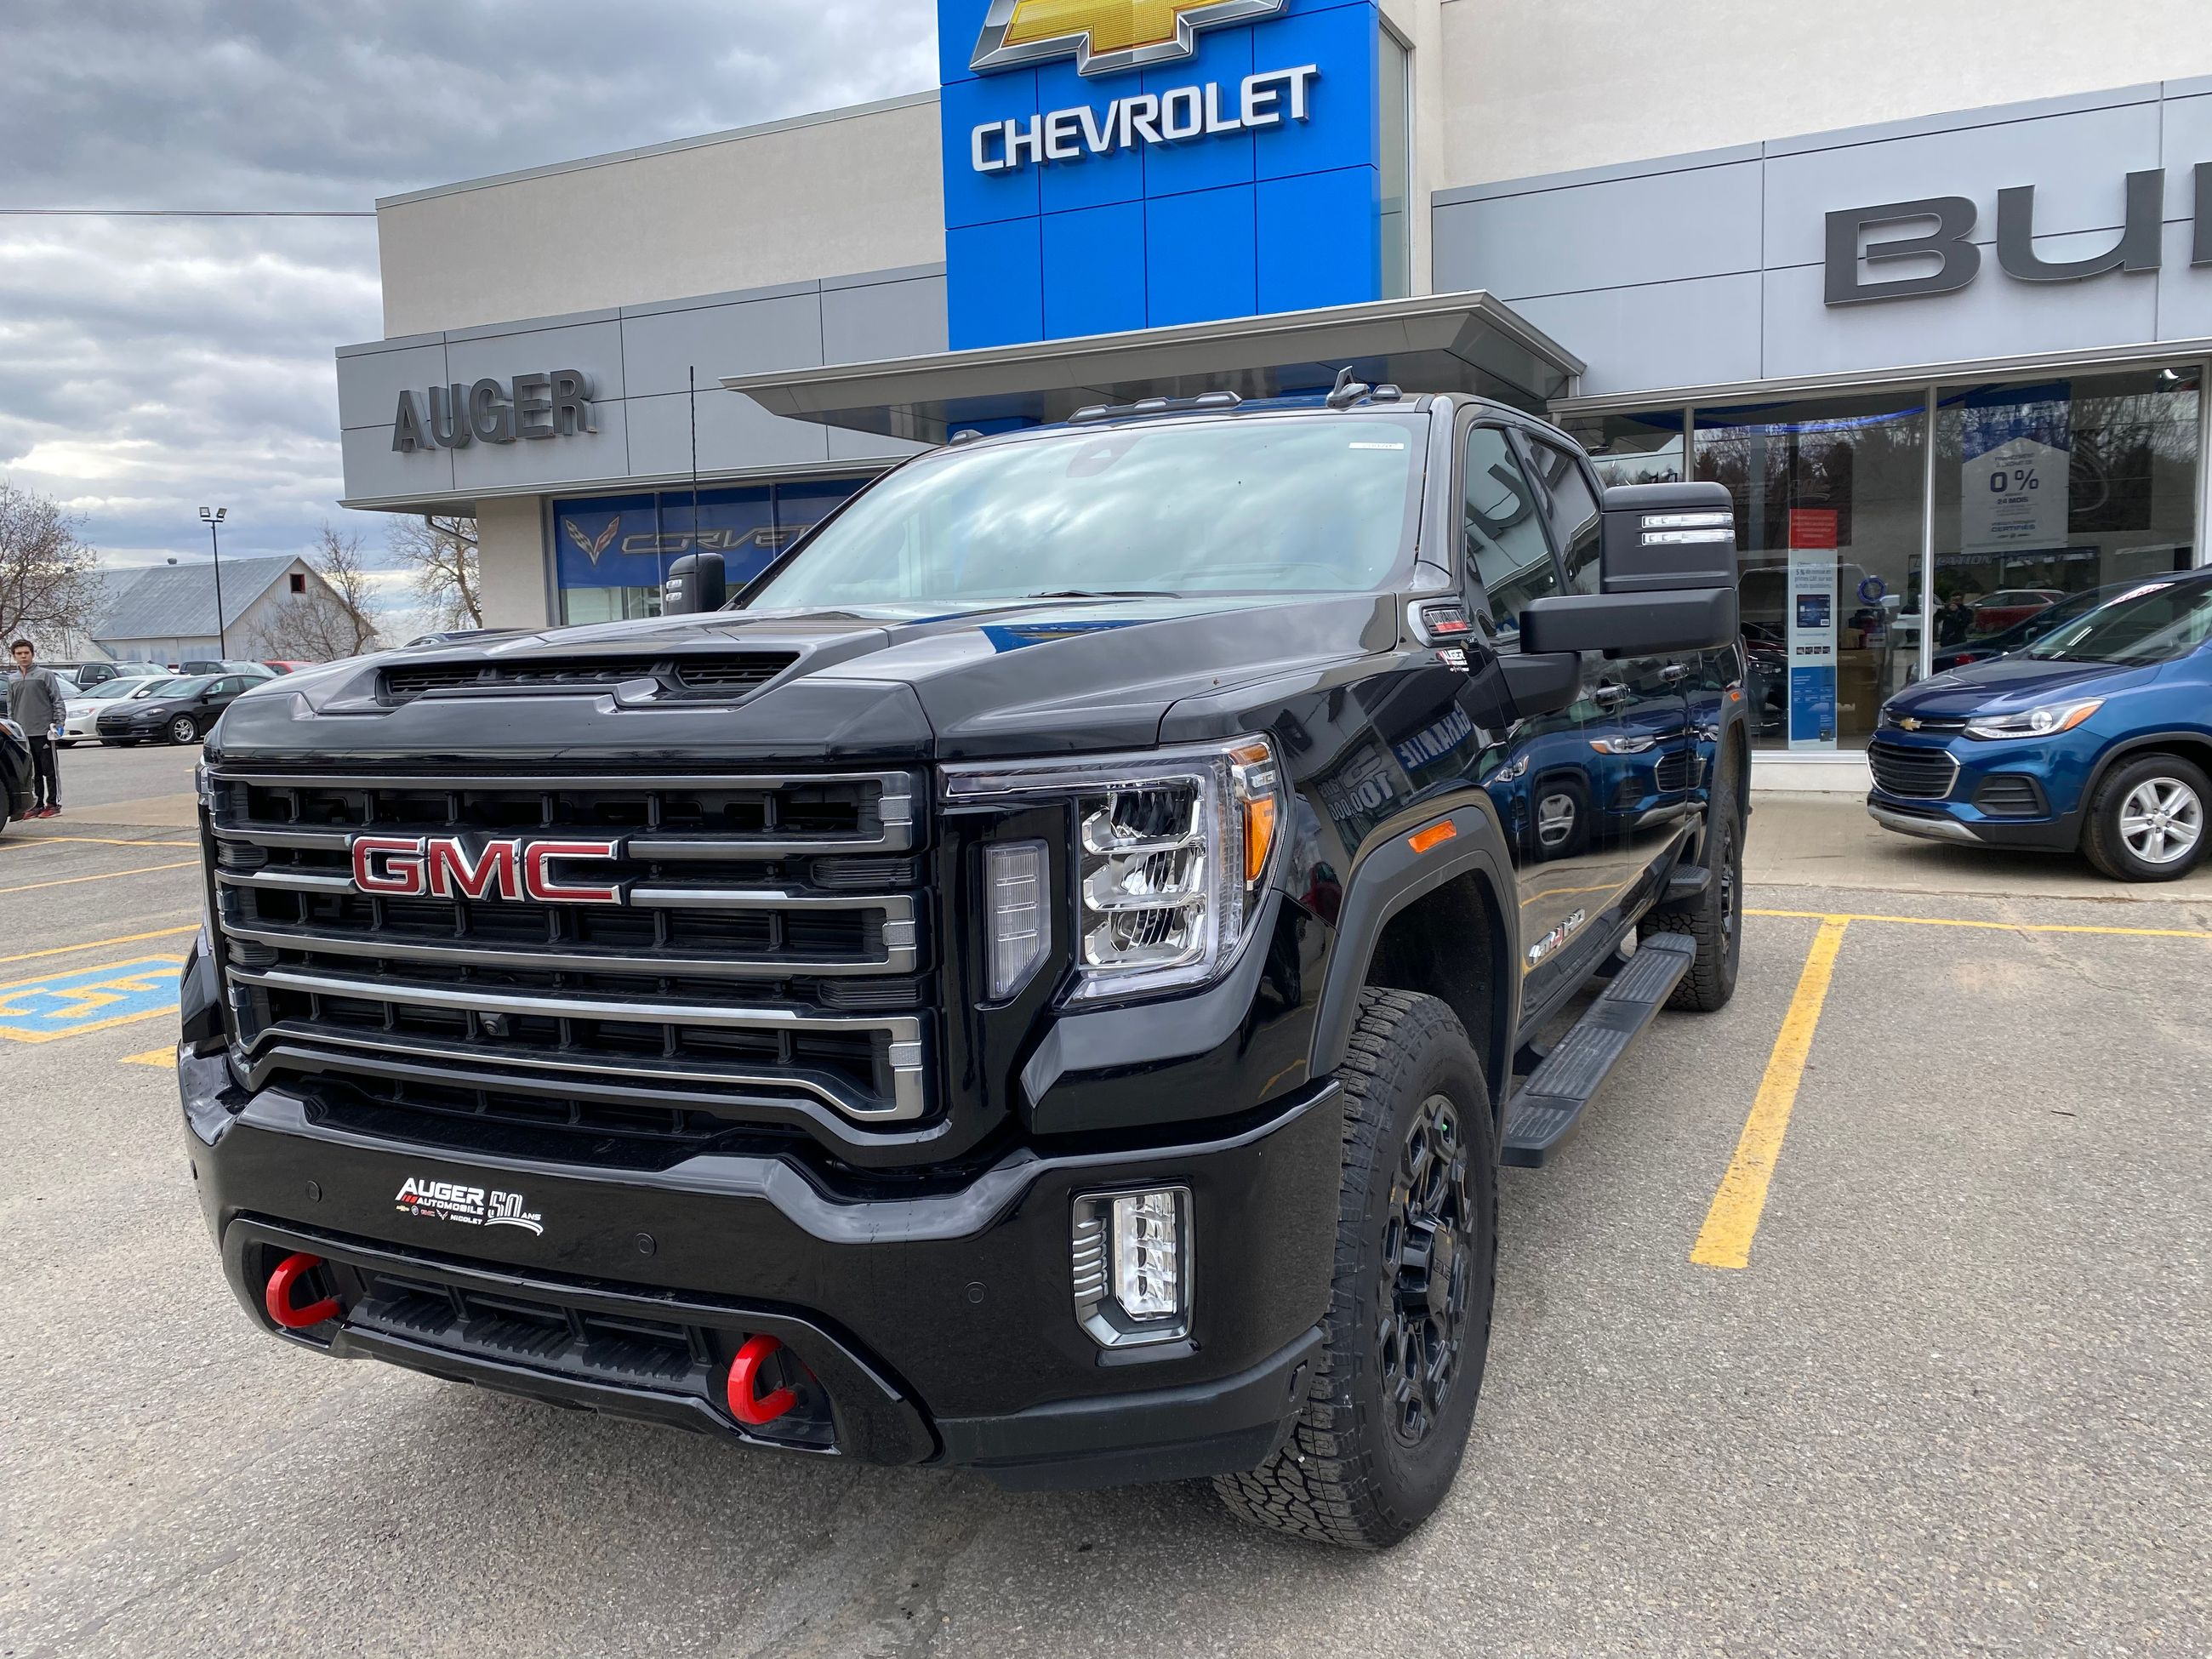 H Auger Automobiles Inc In Nicolet 2020 Gmc Sierra 2500hd At4 20970